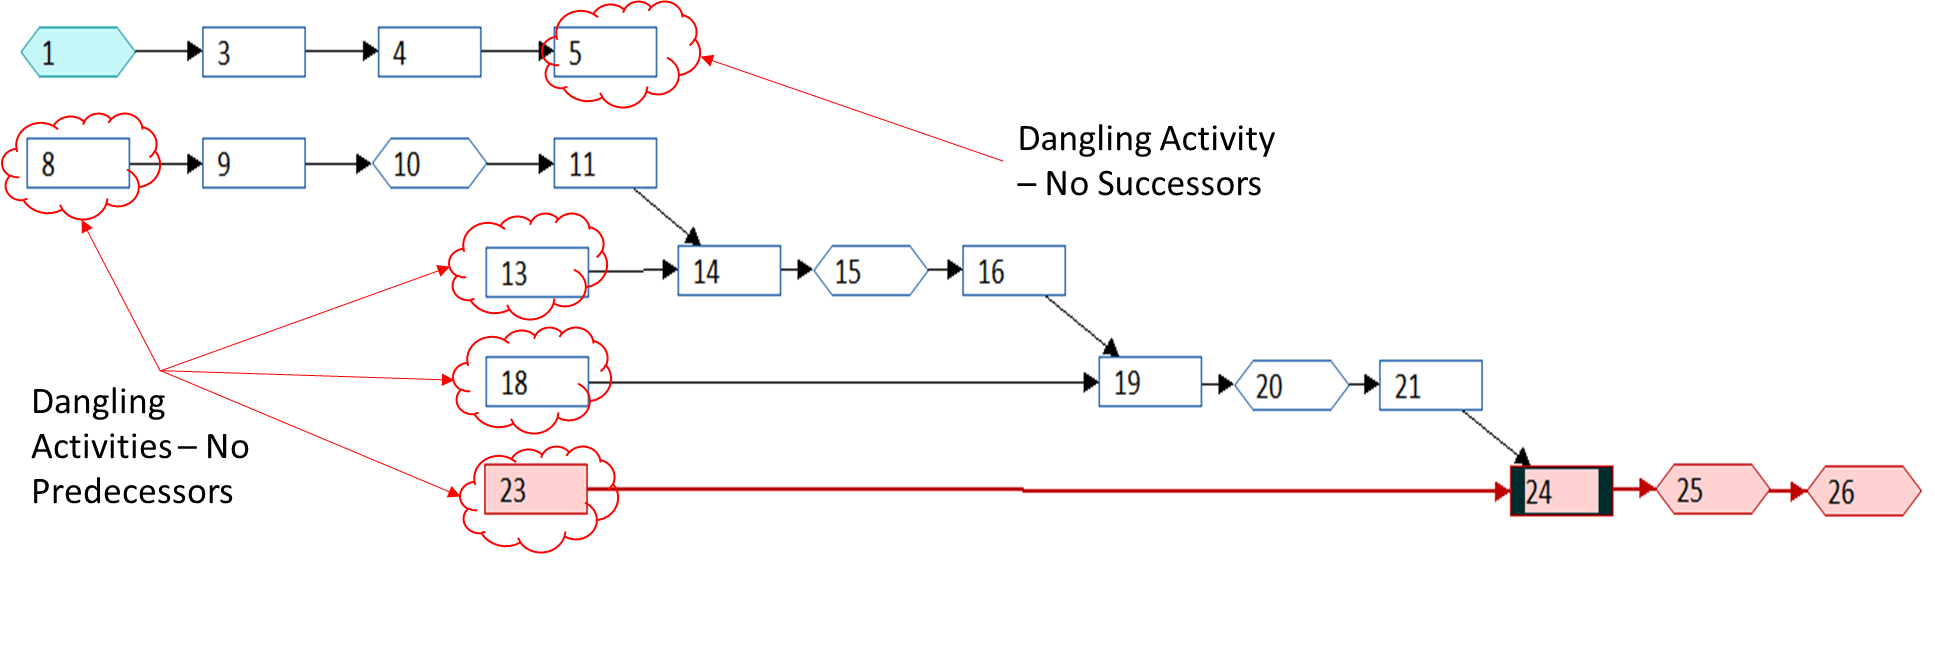 Dangling Logic In Project Schedules Tomsblog Is Just One Example Of How The Ladder Diagram Could Be Expanded Activities That Are Missing Predecessors And Or Successors Relatively Easy To Isolate Scheduling Tools Including Microsoft